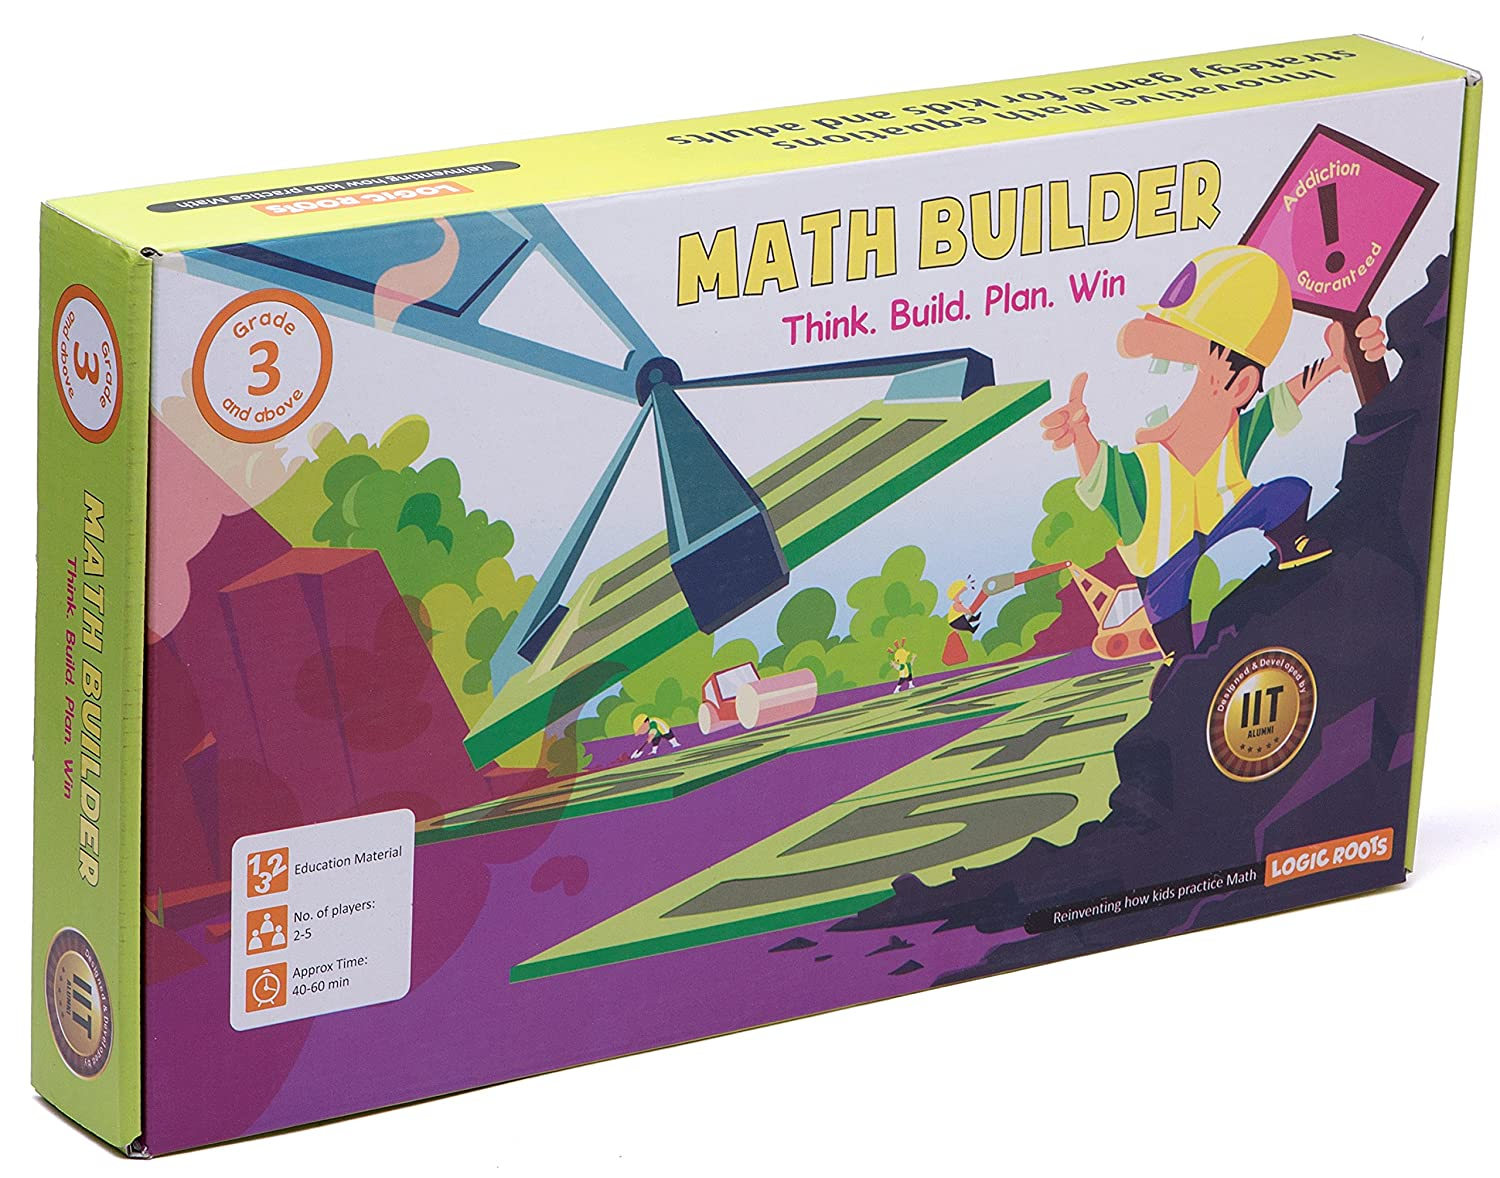 LogicRoots Math Builder Math Games for Fourth Grade with 124 Number Tiles to Build Equations, STEM Kits for Kids Age 8-10